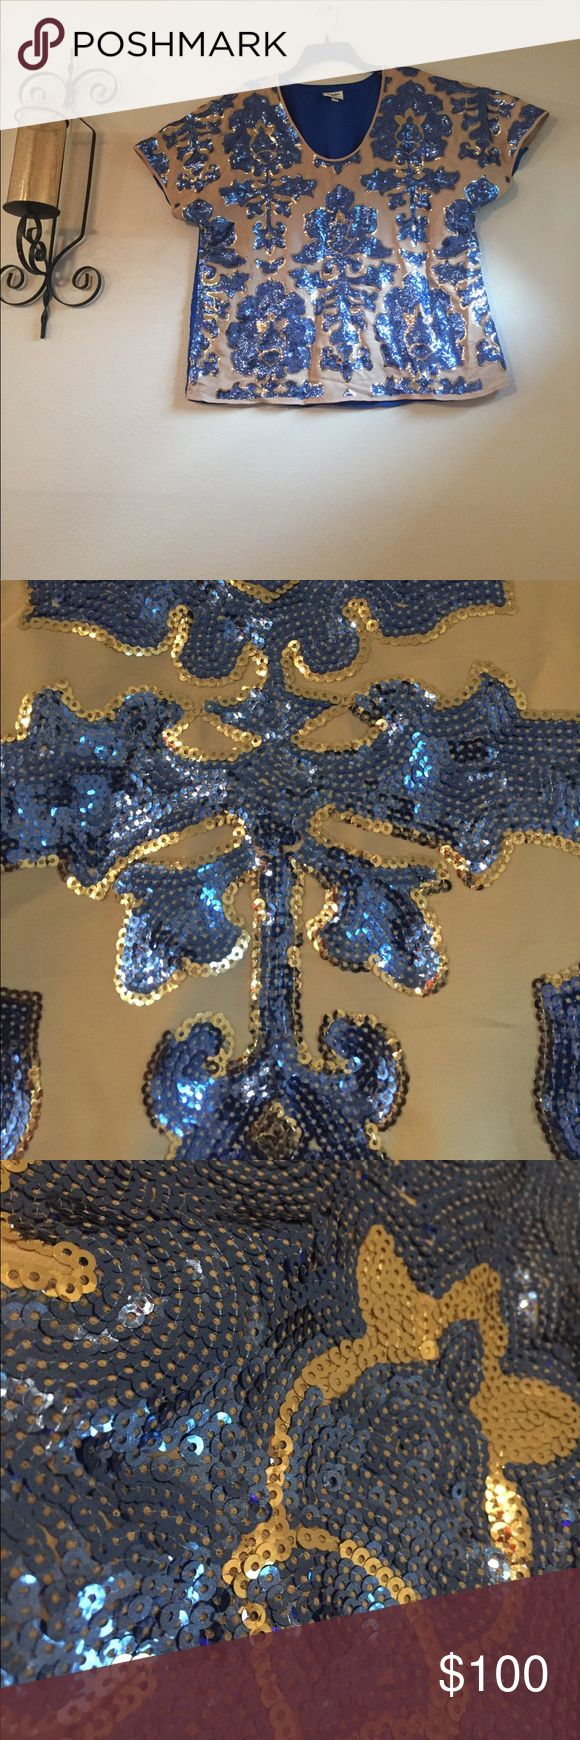 NEIMAN Marcus/Tracy Reese New York Blouse ABSOLUTELY GORGEOUS!!!! royal blue and gold sequin designs beautiful khaki color backdrop and back of Blouse is royal blue Neiman Marcus Tops Blouses